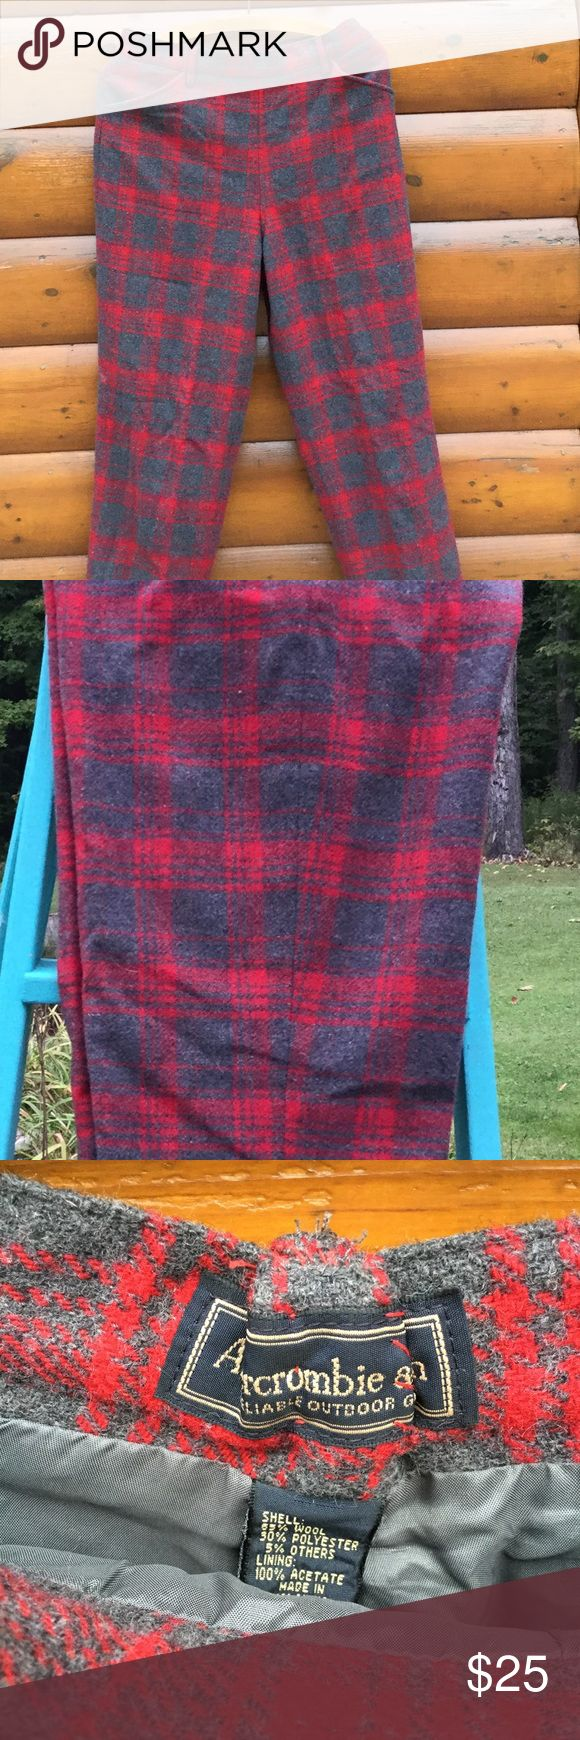 """VTG WOOL/lined PLAID TROUSER, ABERCROMBIE 🍄Sz4/6 🌅Great vintage wool trousers with very flattering pockets💋please see photos they have been """"taken in """", as in photo shows, Recommended dry cleaning since I live in an area where there is no such thing and they've been stored for years.....NO BITES, HOLES OR RIPS., though the tag says 8,...very,very small, that's why I state 4/6🍂 Abercrombie & Fitch Pants Ankle & Cropped"""